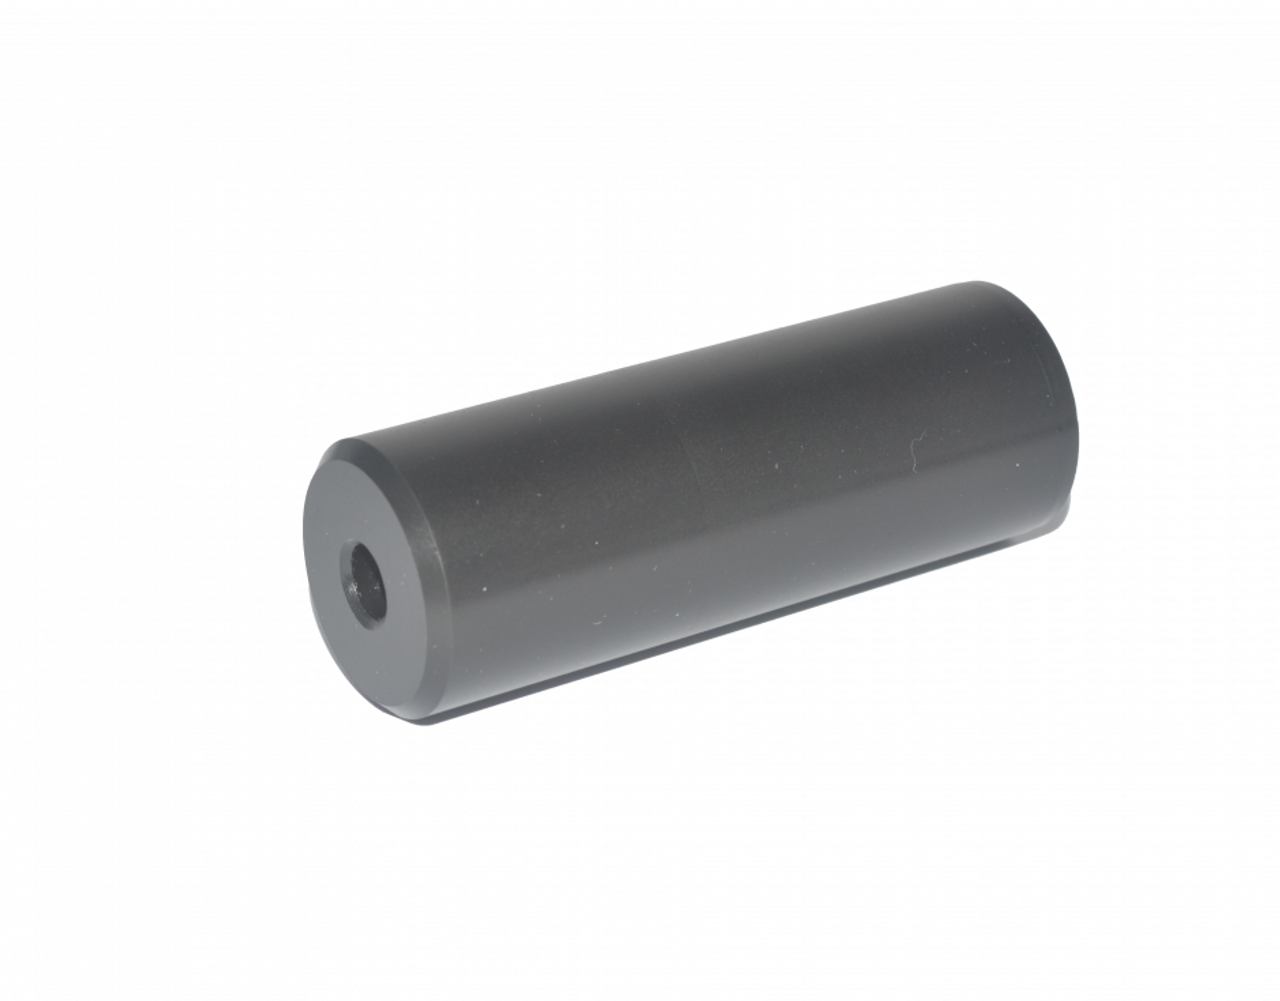 Armaspec A1/A2 Fixed Stock Spacer for Stealth Recoil Spring